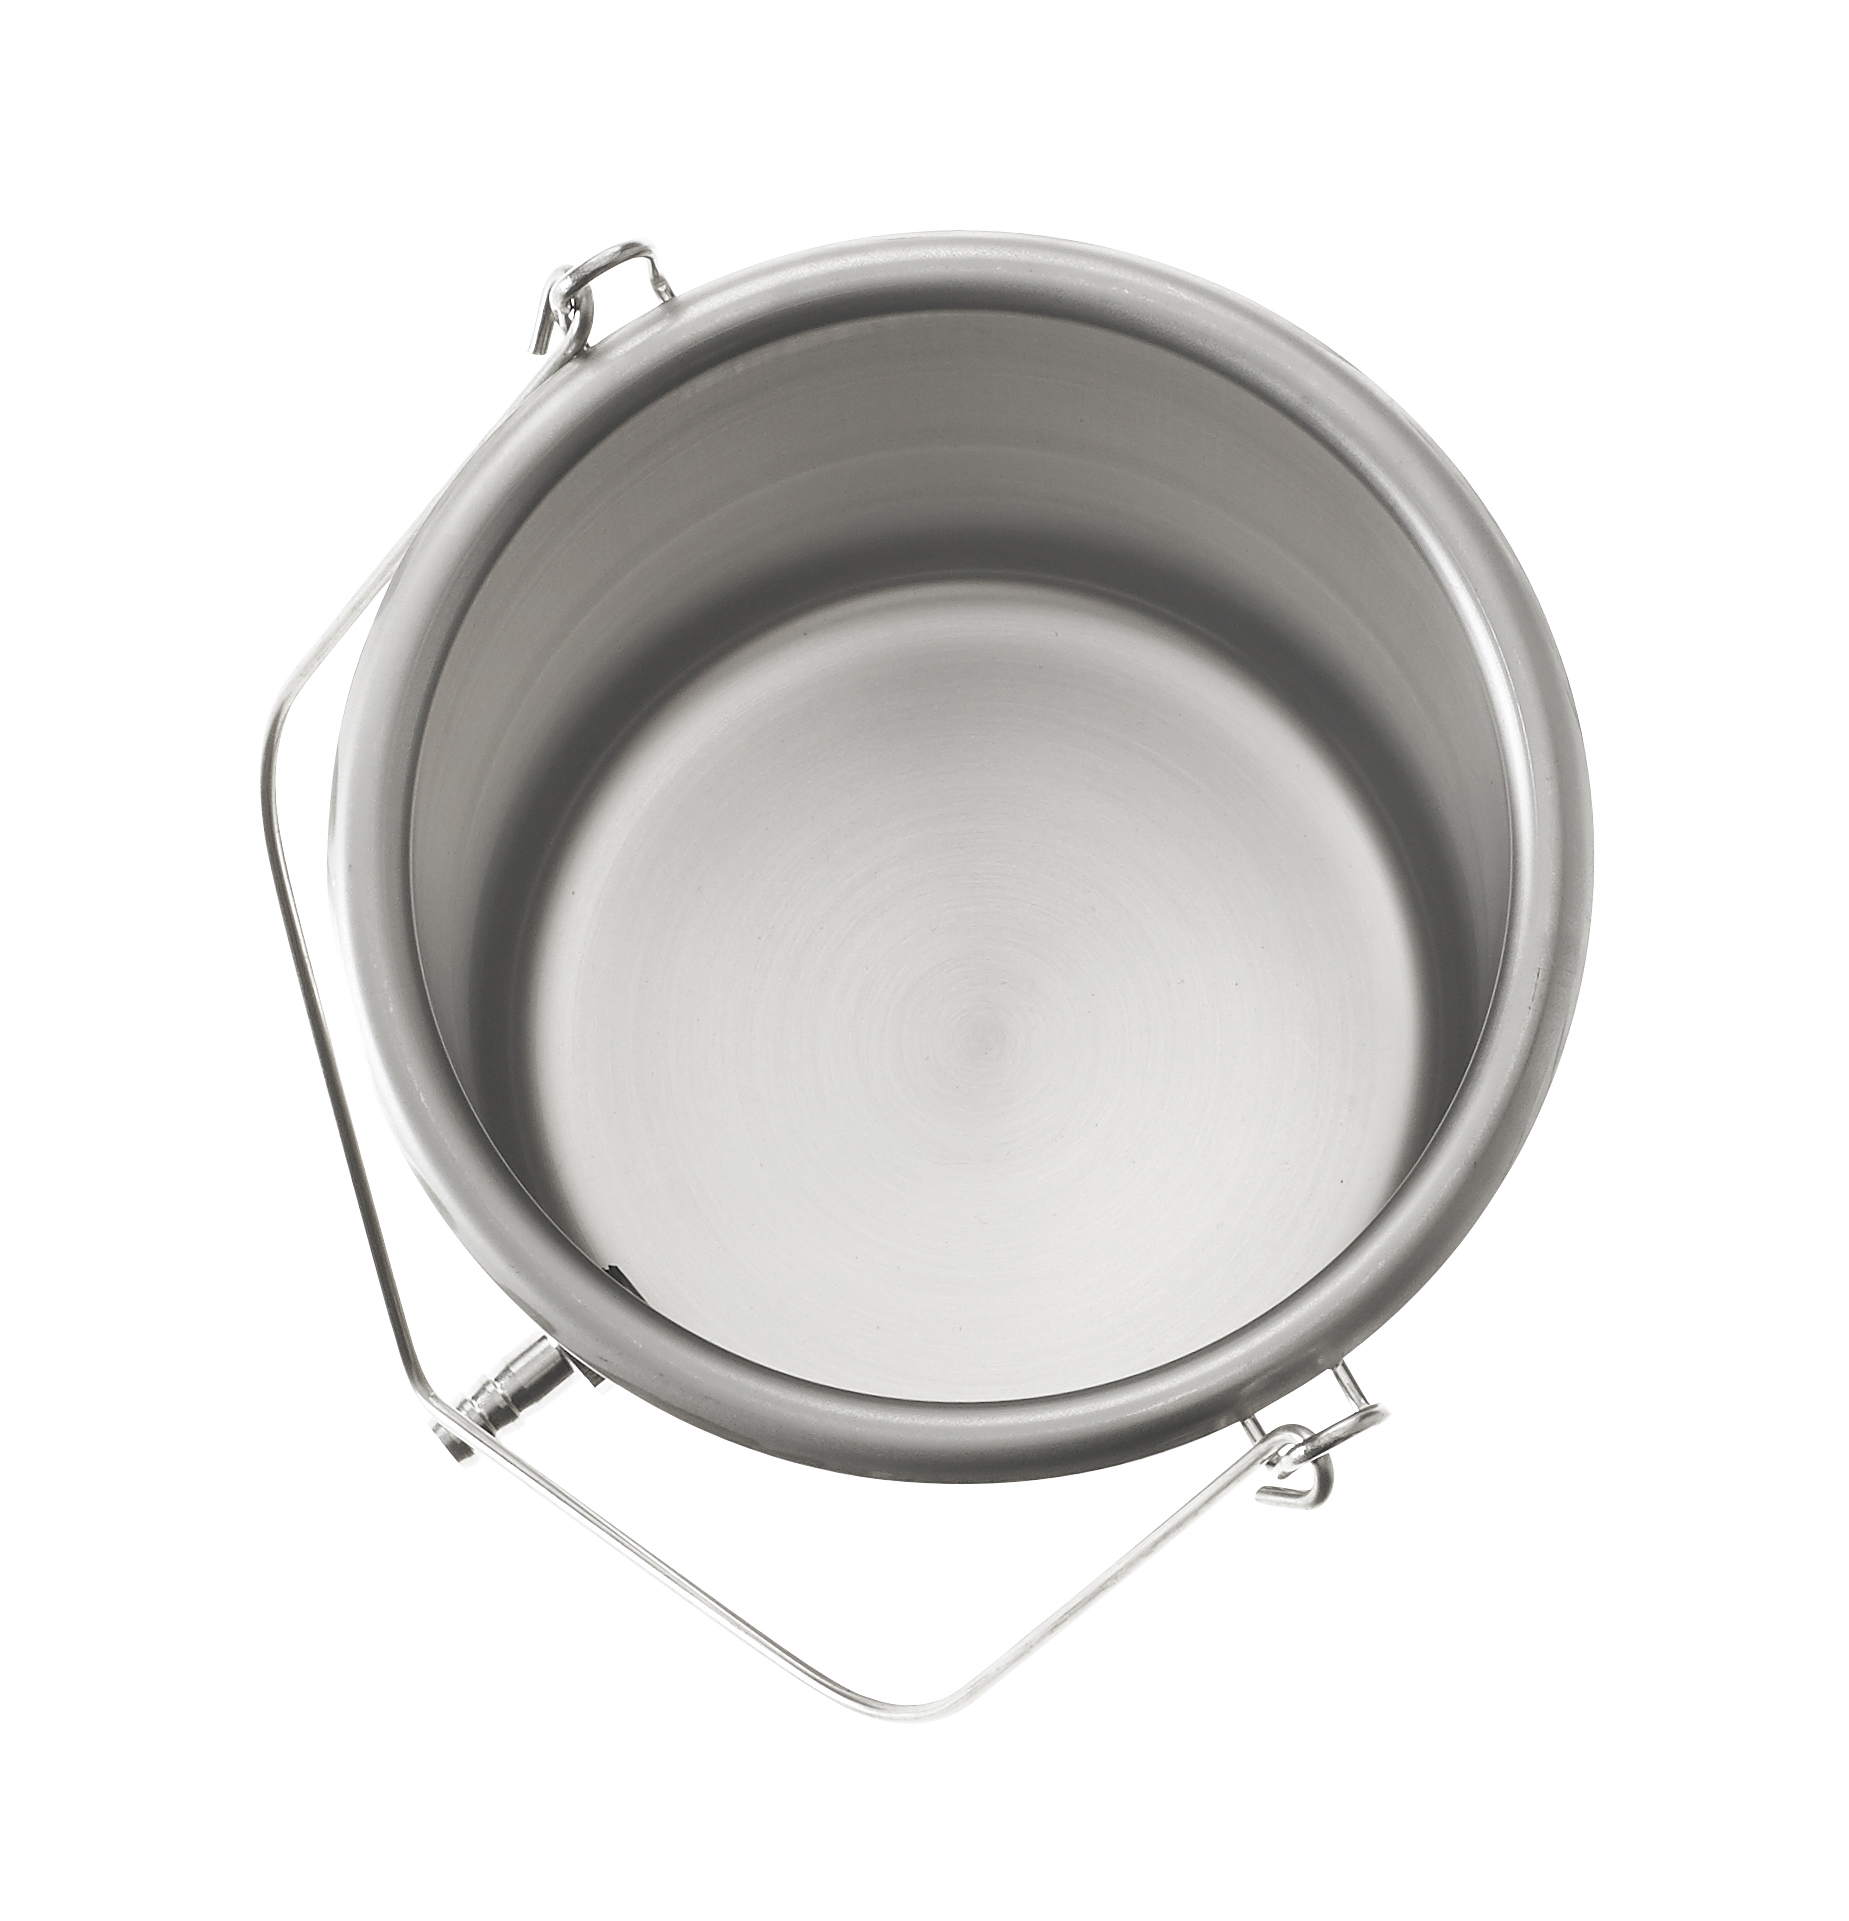 bucket-2-qt-interior-usa.jpg